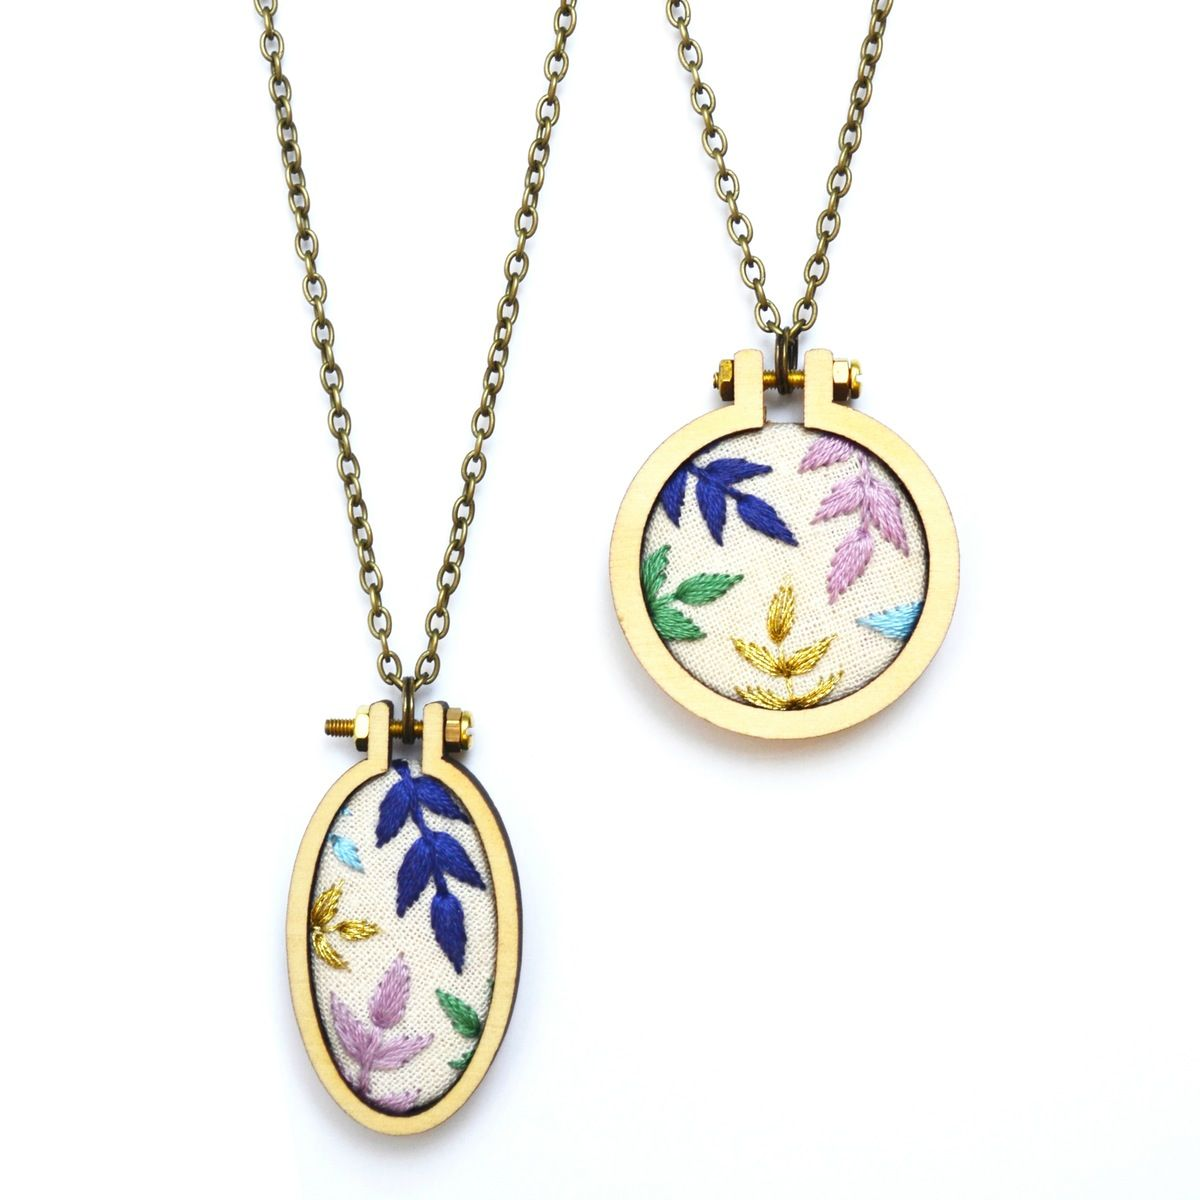 Inspired by the return of spring, this necklace features hand embroidered foliage with metallic gold detail. Wooden hoops are made from sustainably...